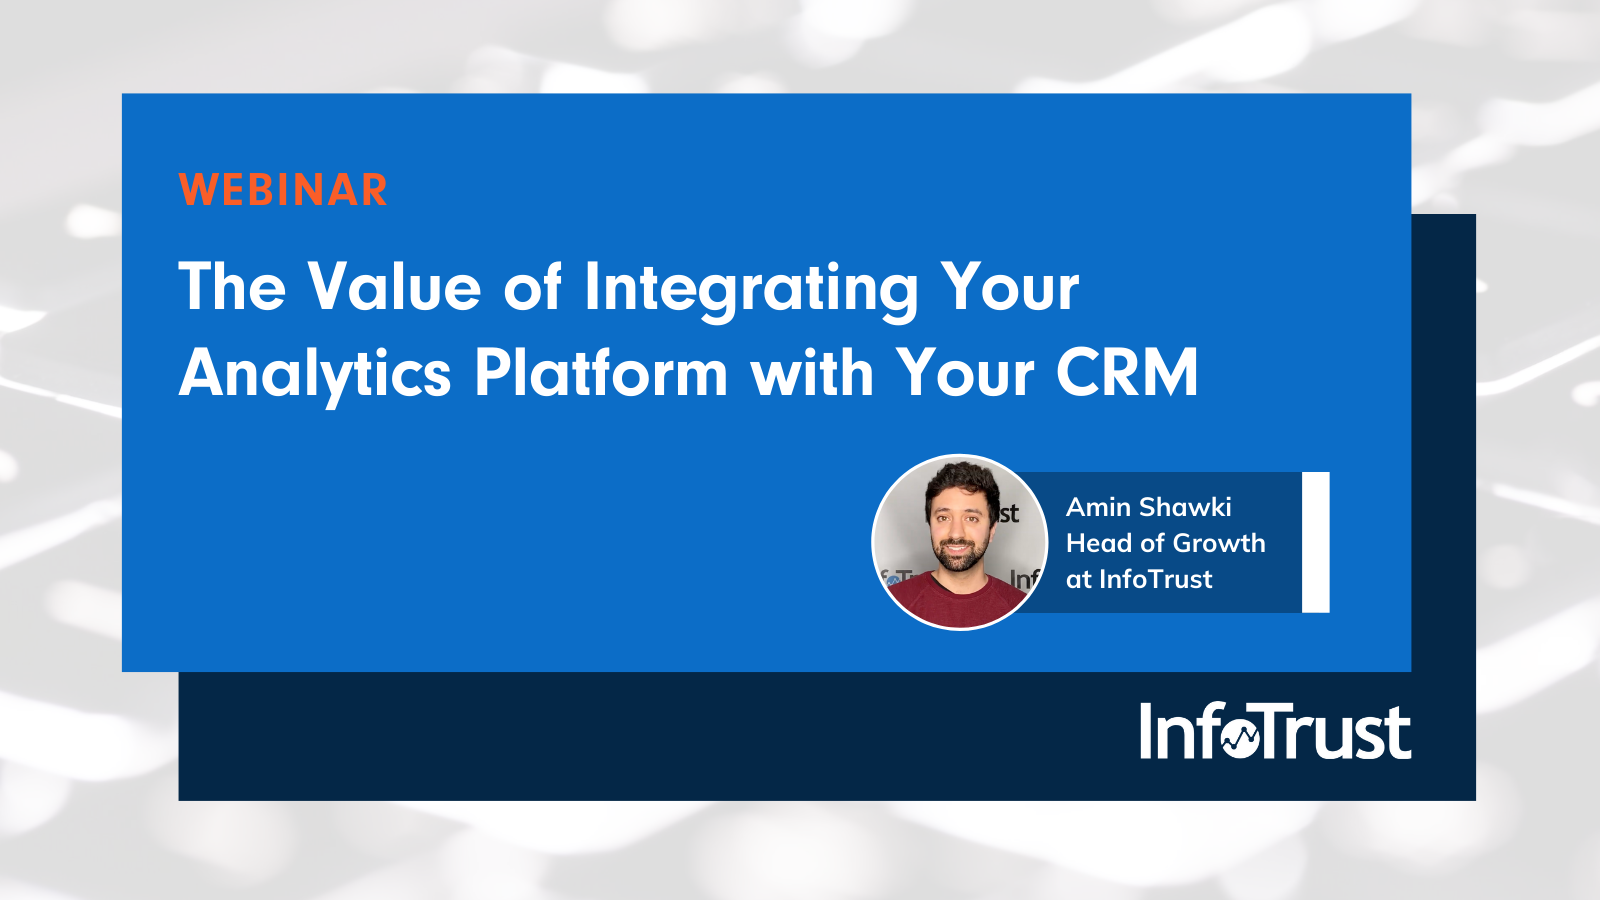 Value of Integrating Your Analytics Platform with Your CRM